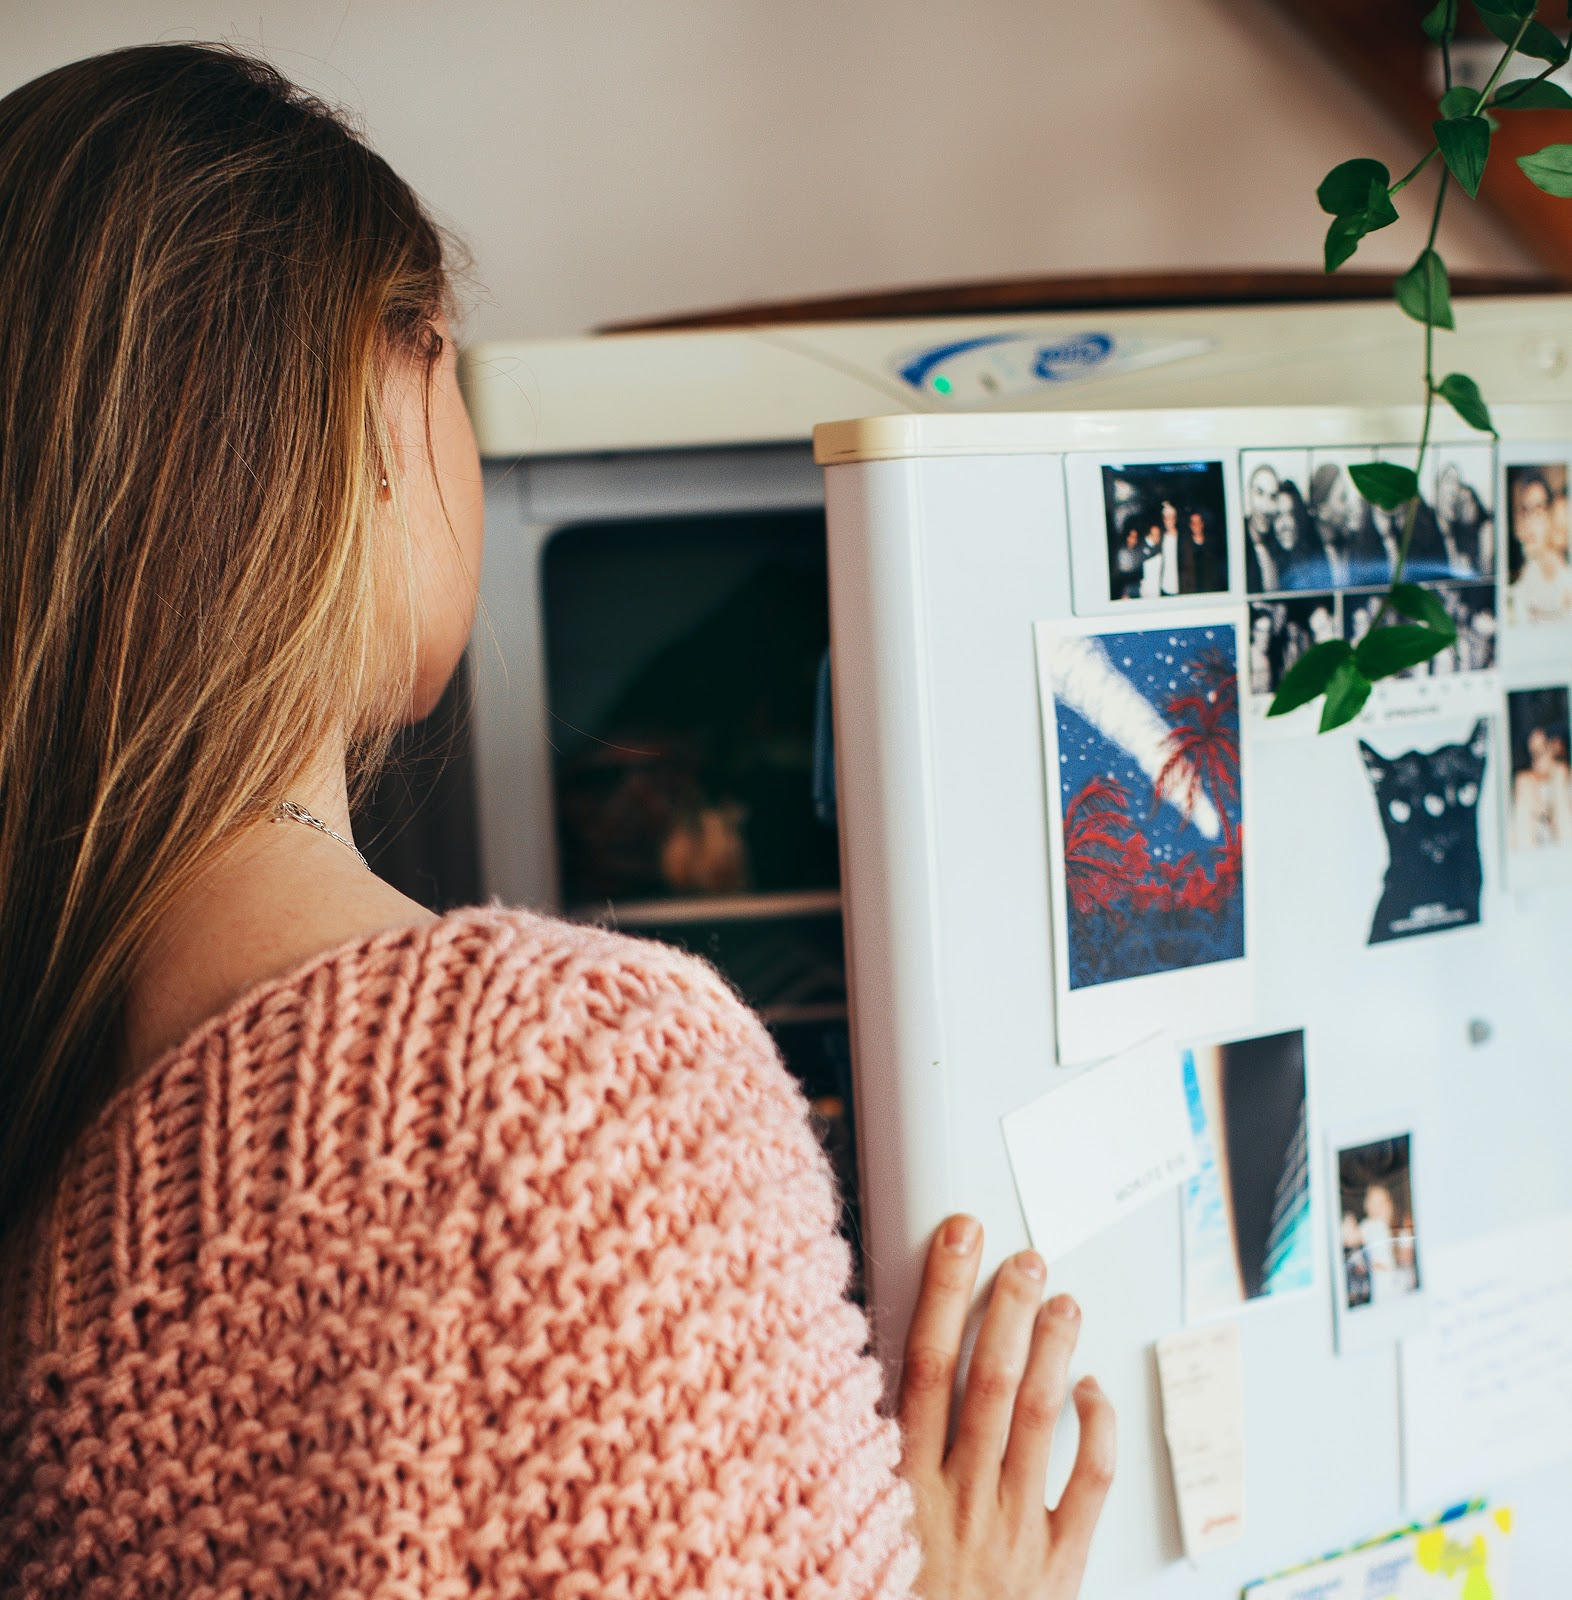 a woman looking in the fridge